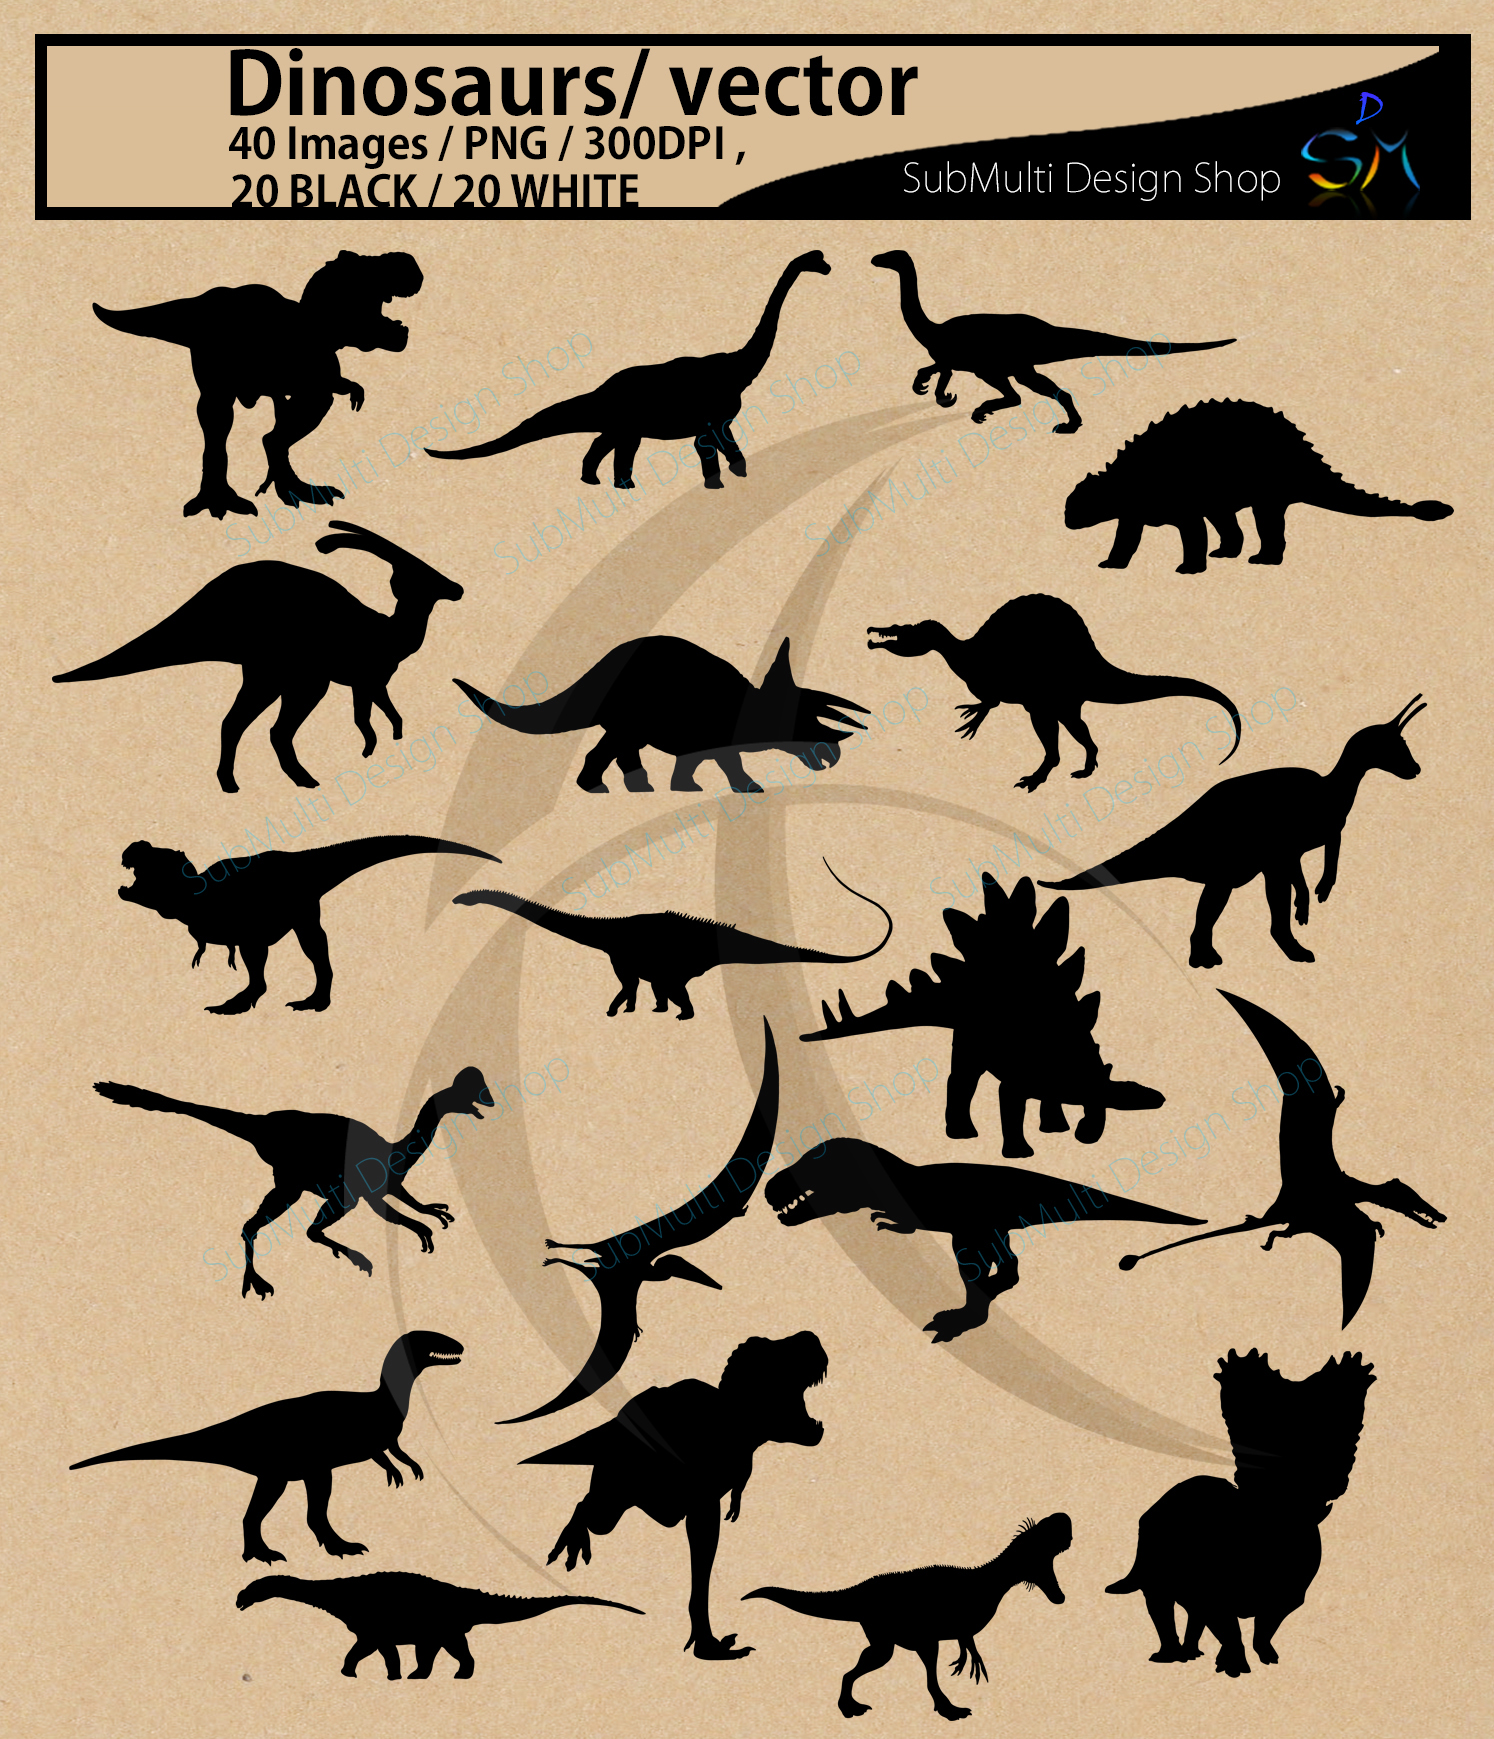 Dinosaurs silhouette svg / dinosaur Clipart, Iron on Transfer, Scrapbooking & Crafts / SVG template / EPS / PNG /animal silhouette / vector example image 3